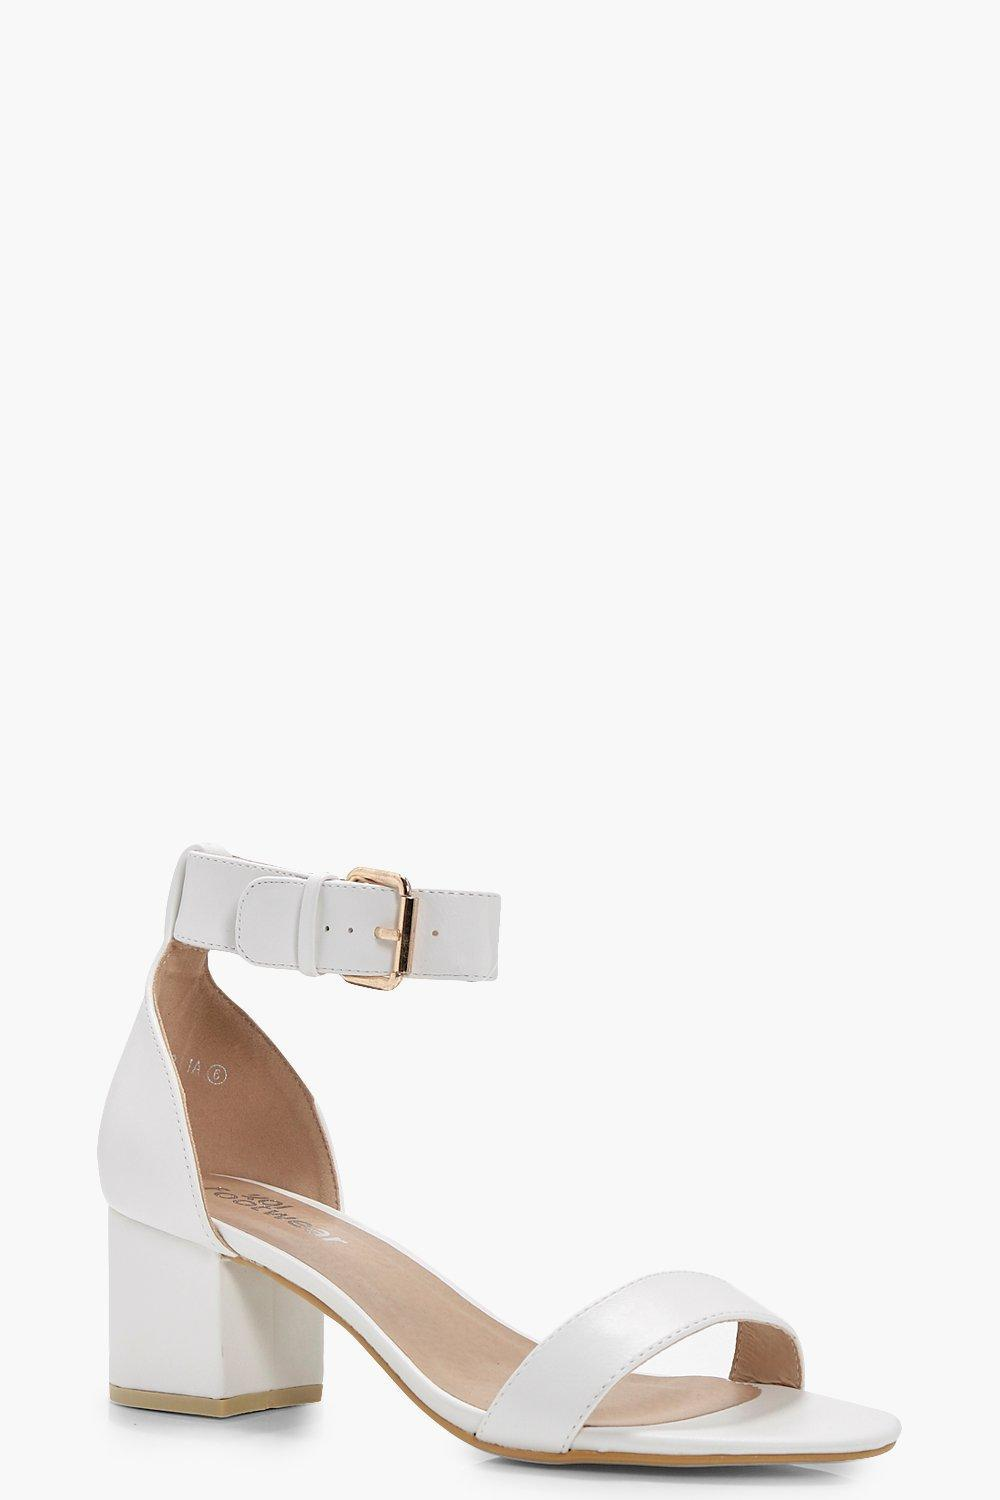 4b770235757 Lyst - Boohoo Erin Ankle Band Low Block Heel 2 Parts in White